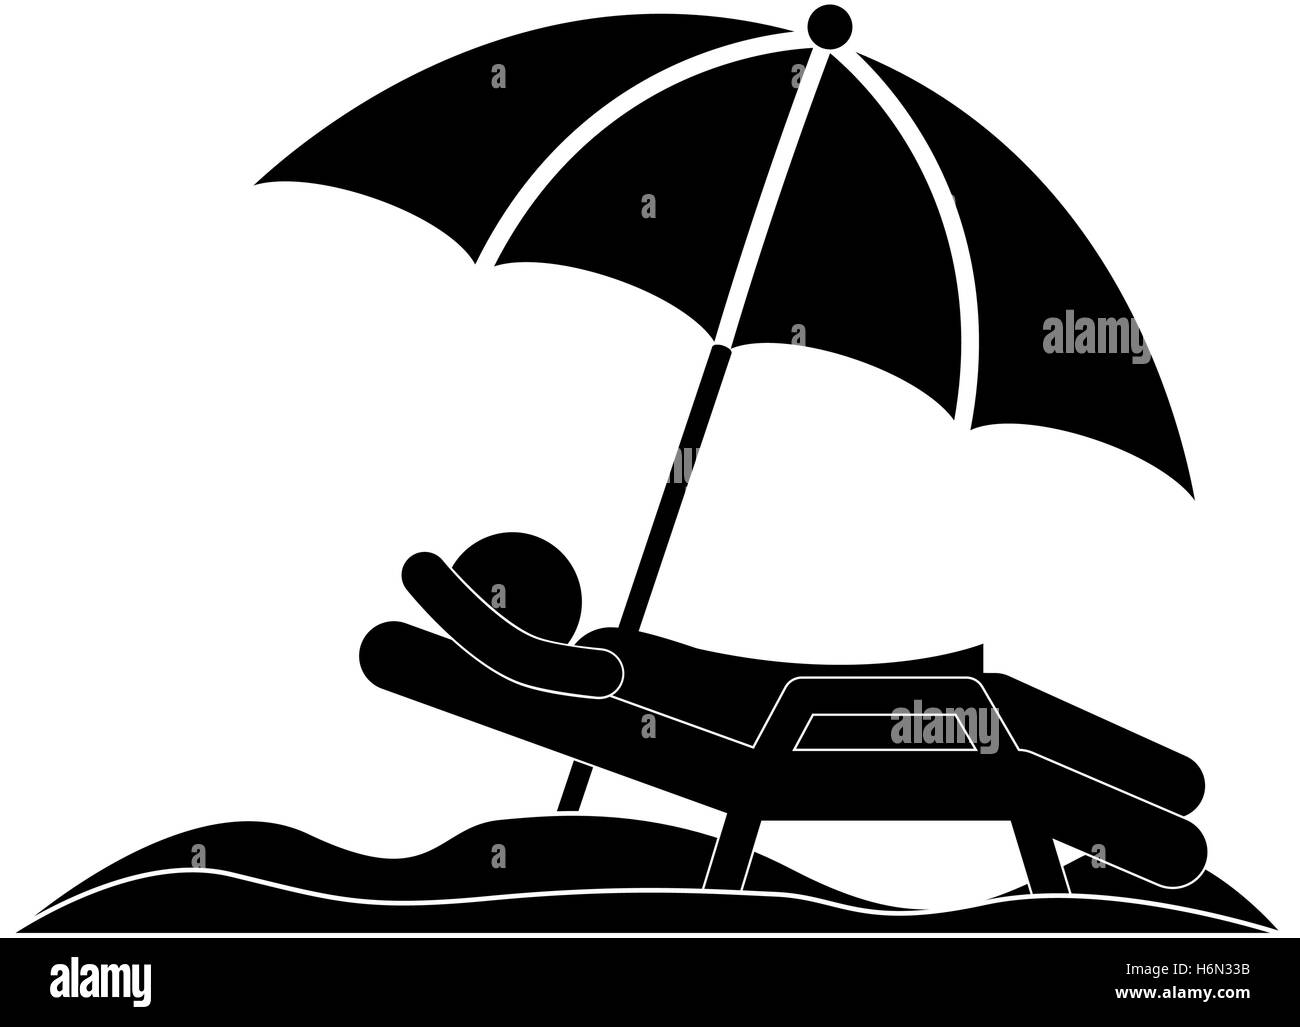 Beach chair and umbrella black and white - Stock Vector Silhouette Person In Beach Chair With Umbrella Vector Illustration